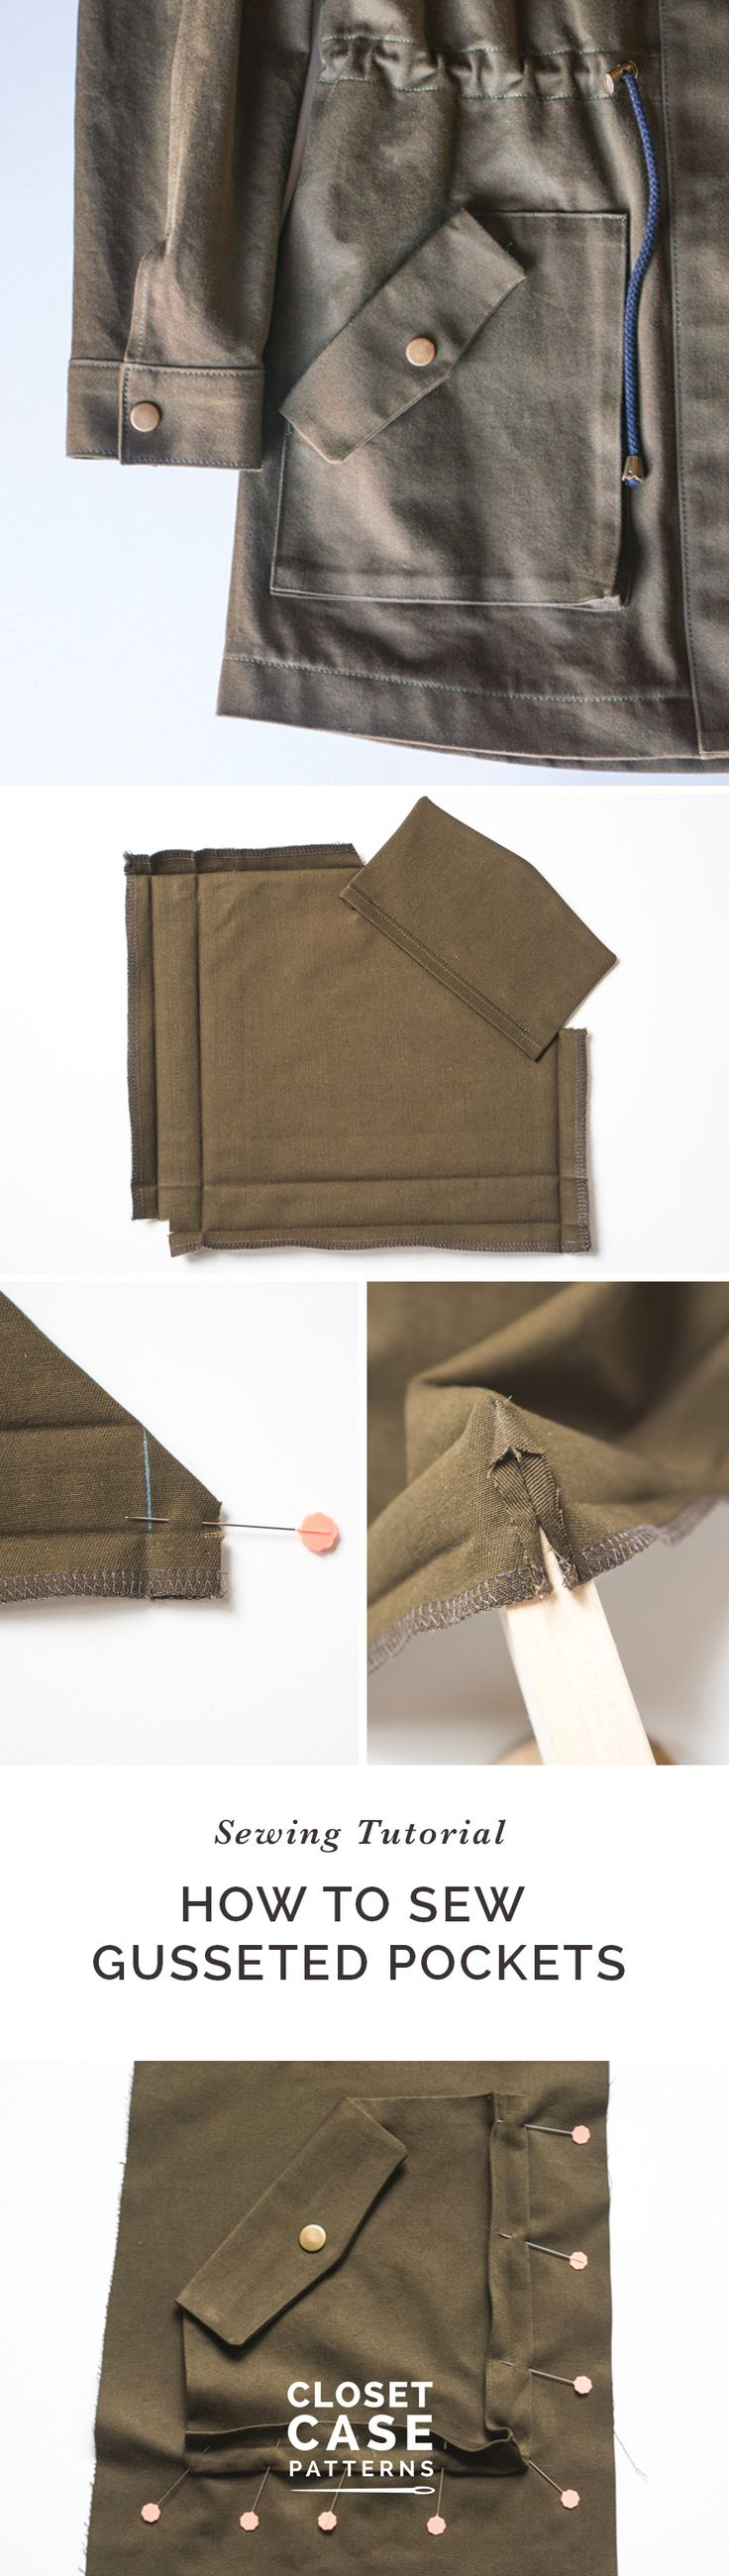 A tutorial for sewing gusseted pockets from Closet Case Patterns https://closetcasepatterns.com/sewalong/sewing-gusseted-pockets-kelly-anorak-sewalong/